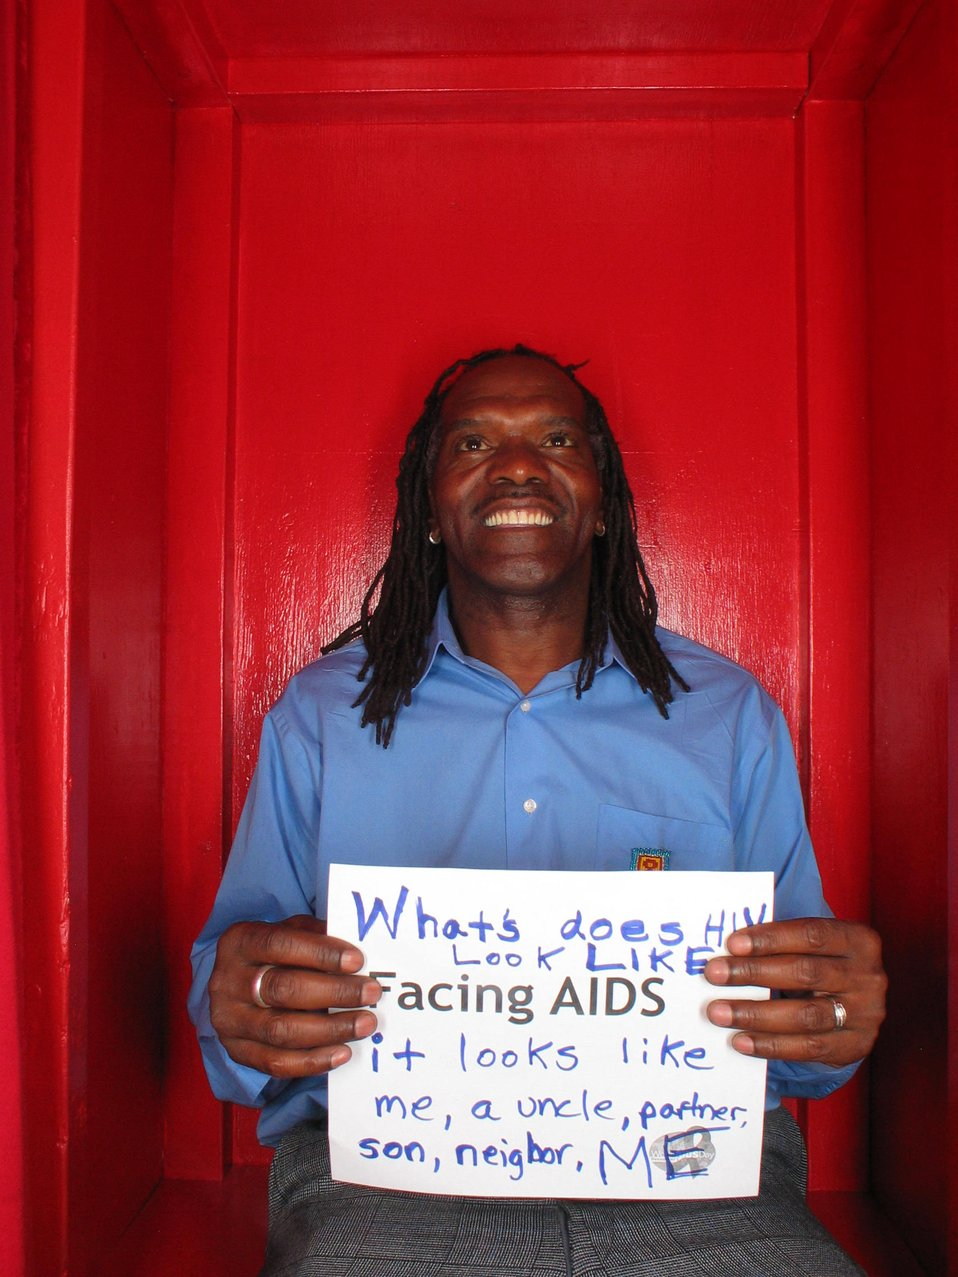 What does HIV look like? Facing AIDS it looks like me, a uncle, son, neighbor. ME.